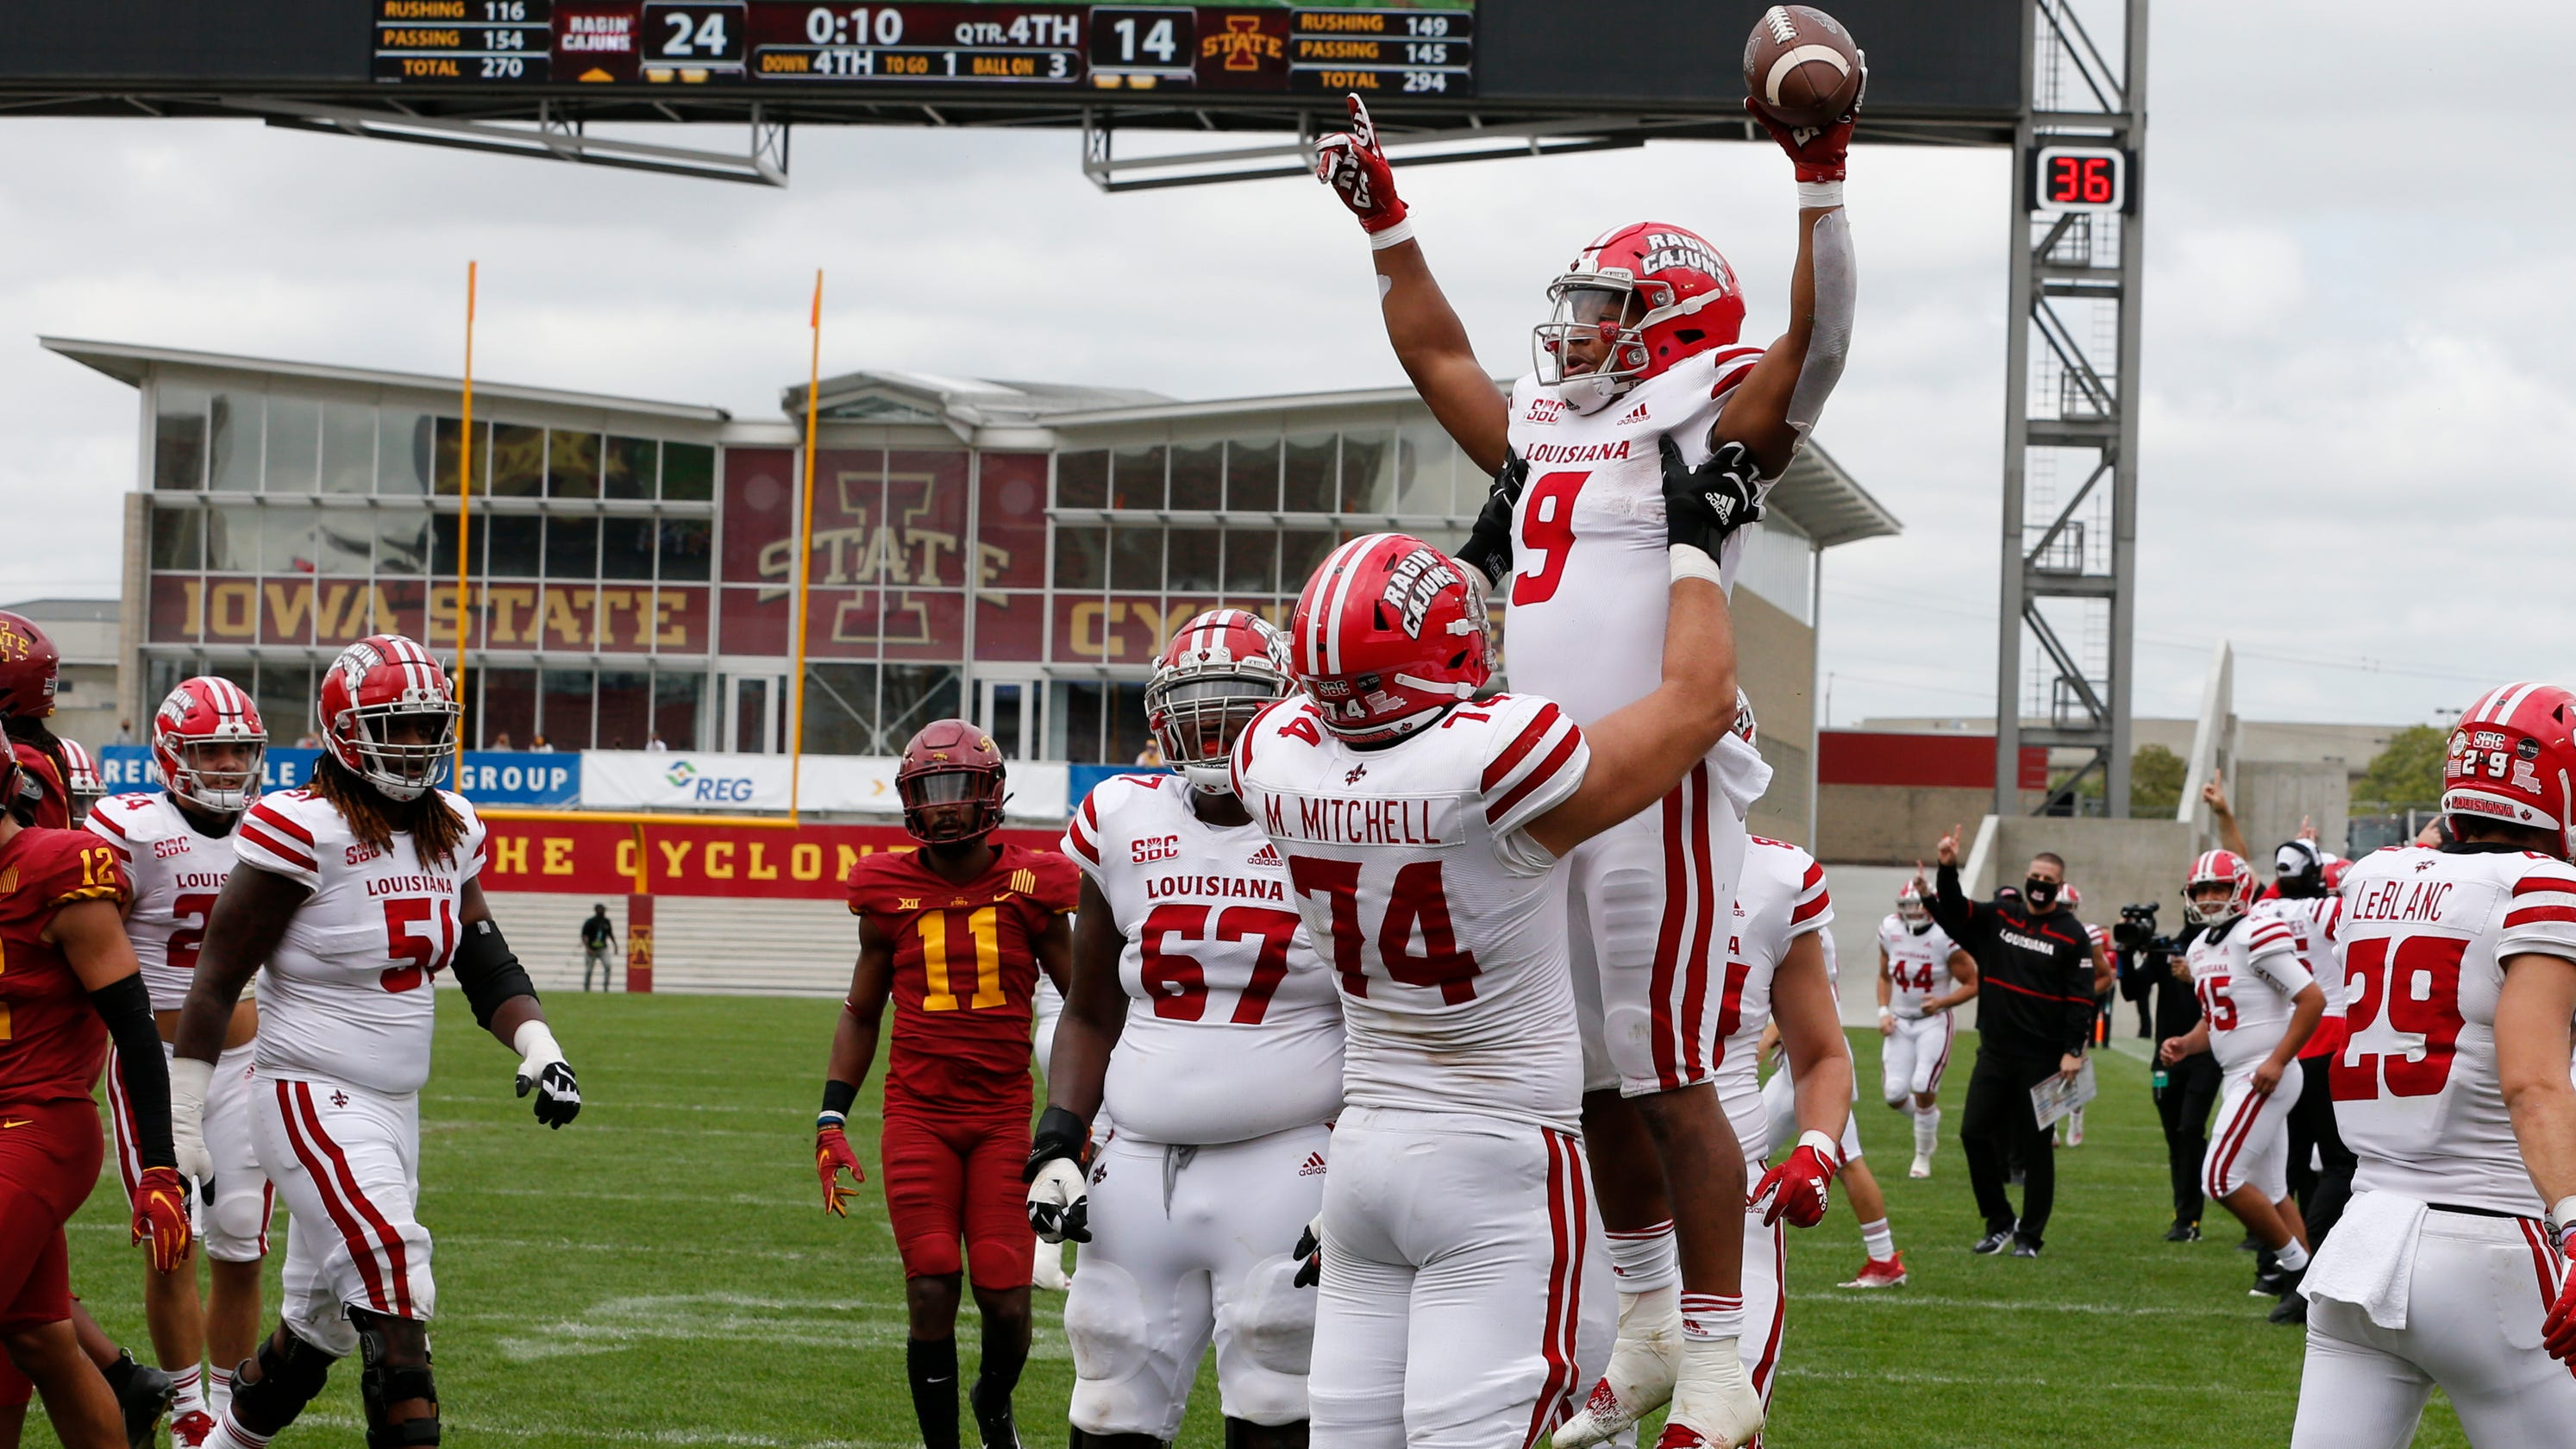 Louisiana-Lafayette up, Florida State down in latest NCAA Re-Rank 1-76